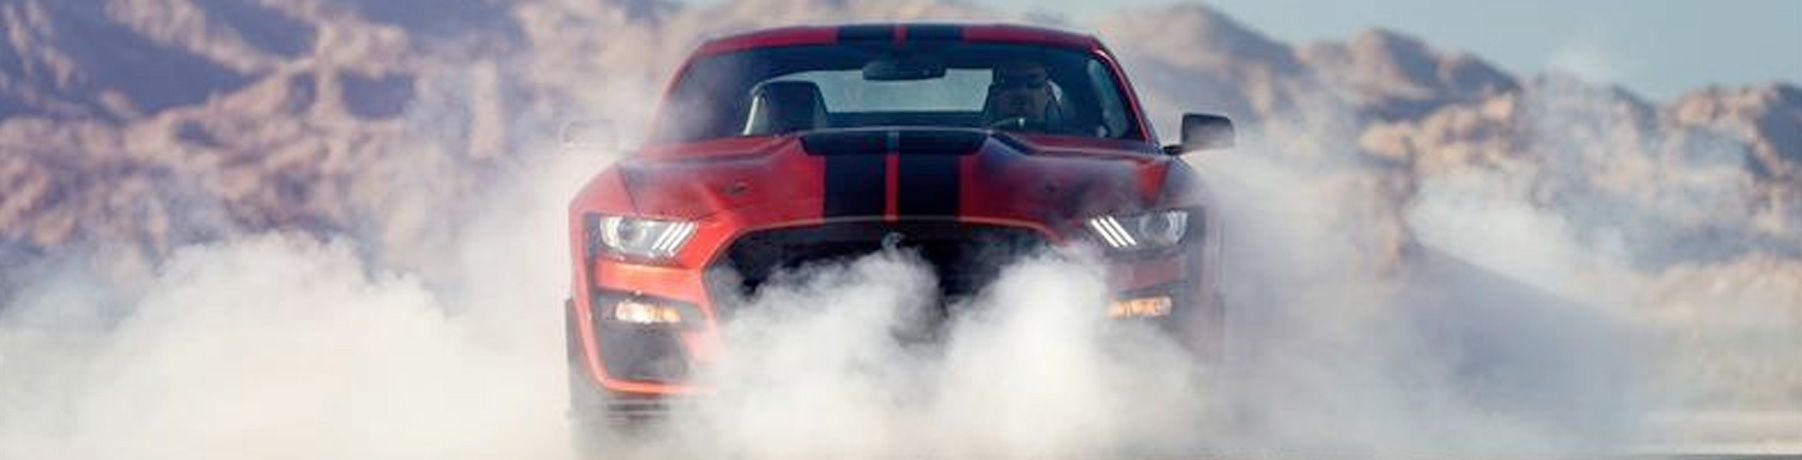 2020-Ford-Mustang-Shelby-GT500-A-2_o